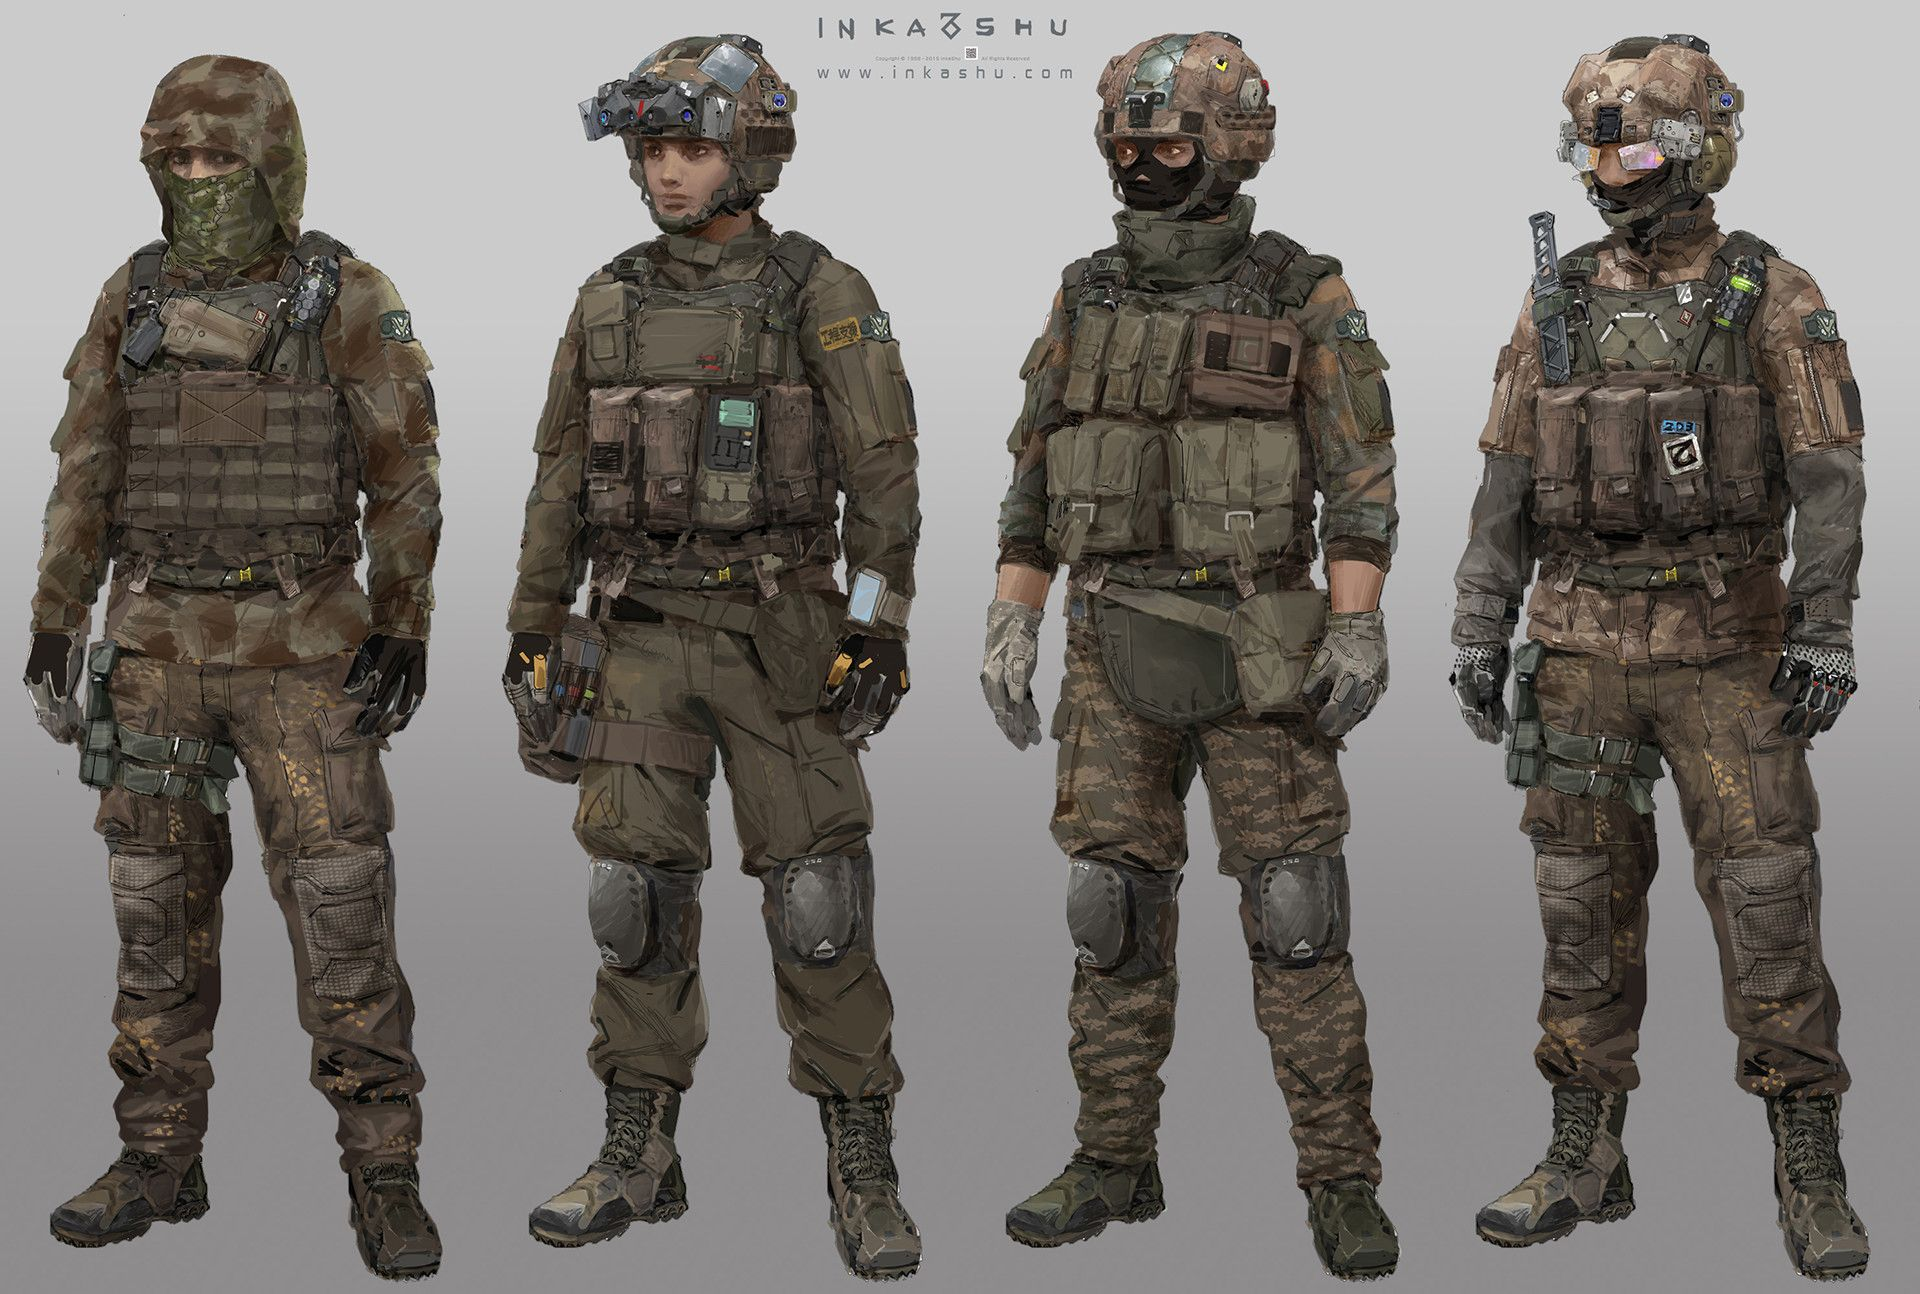 ArtStation - FPS Game Characters, Inka Shu